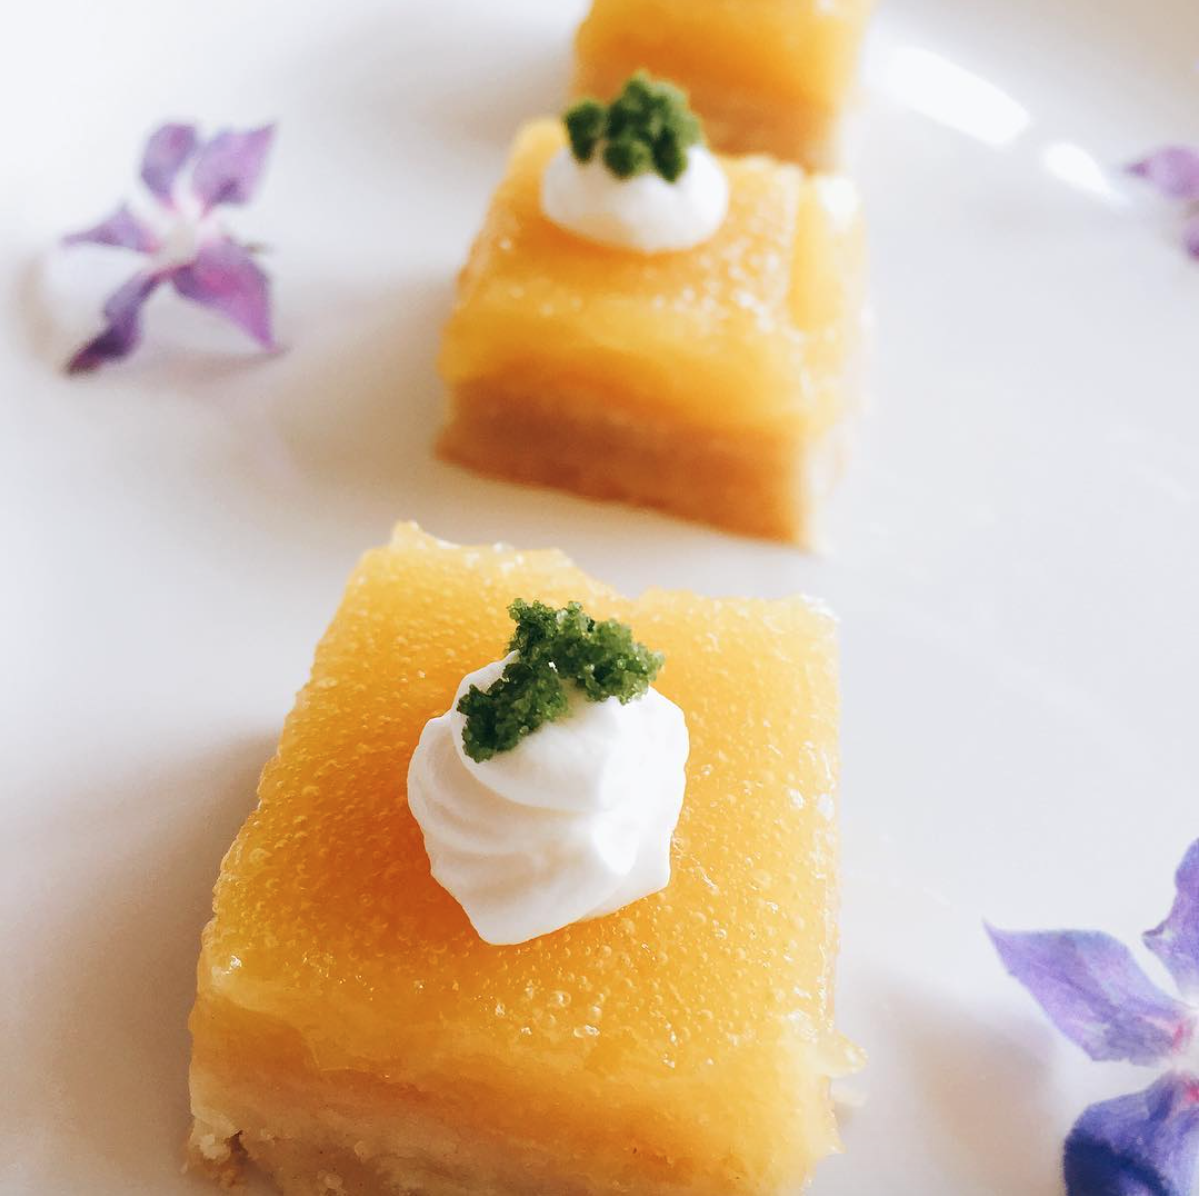 - Lemon olive oil bars with basil sugar